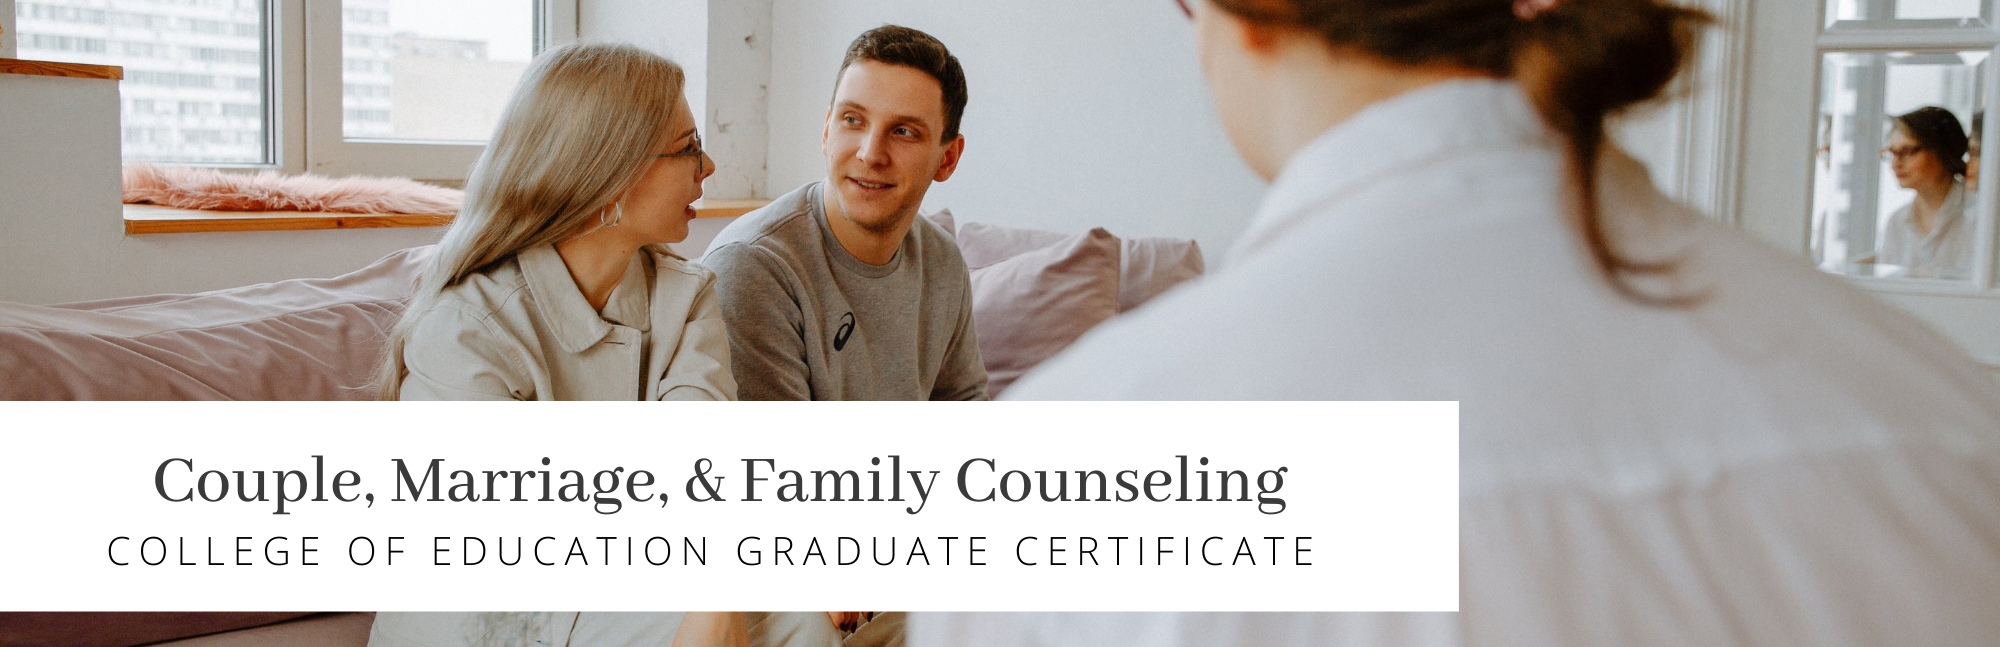 Couple, Marriage, & Family Counseling: College of Education Graduate Certificate